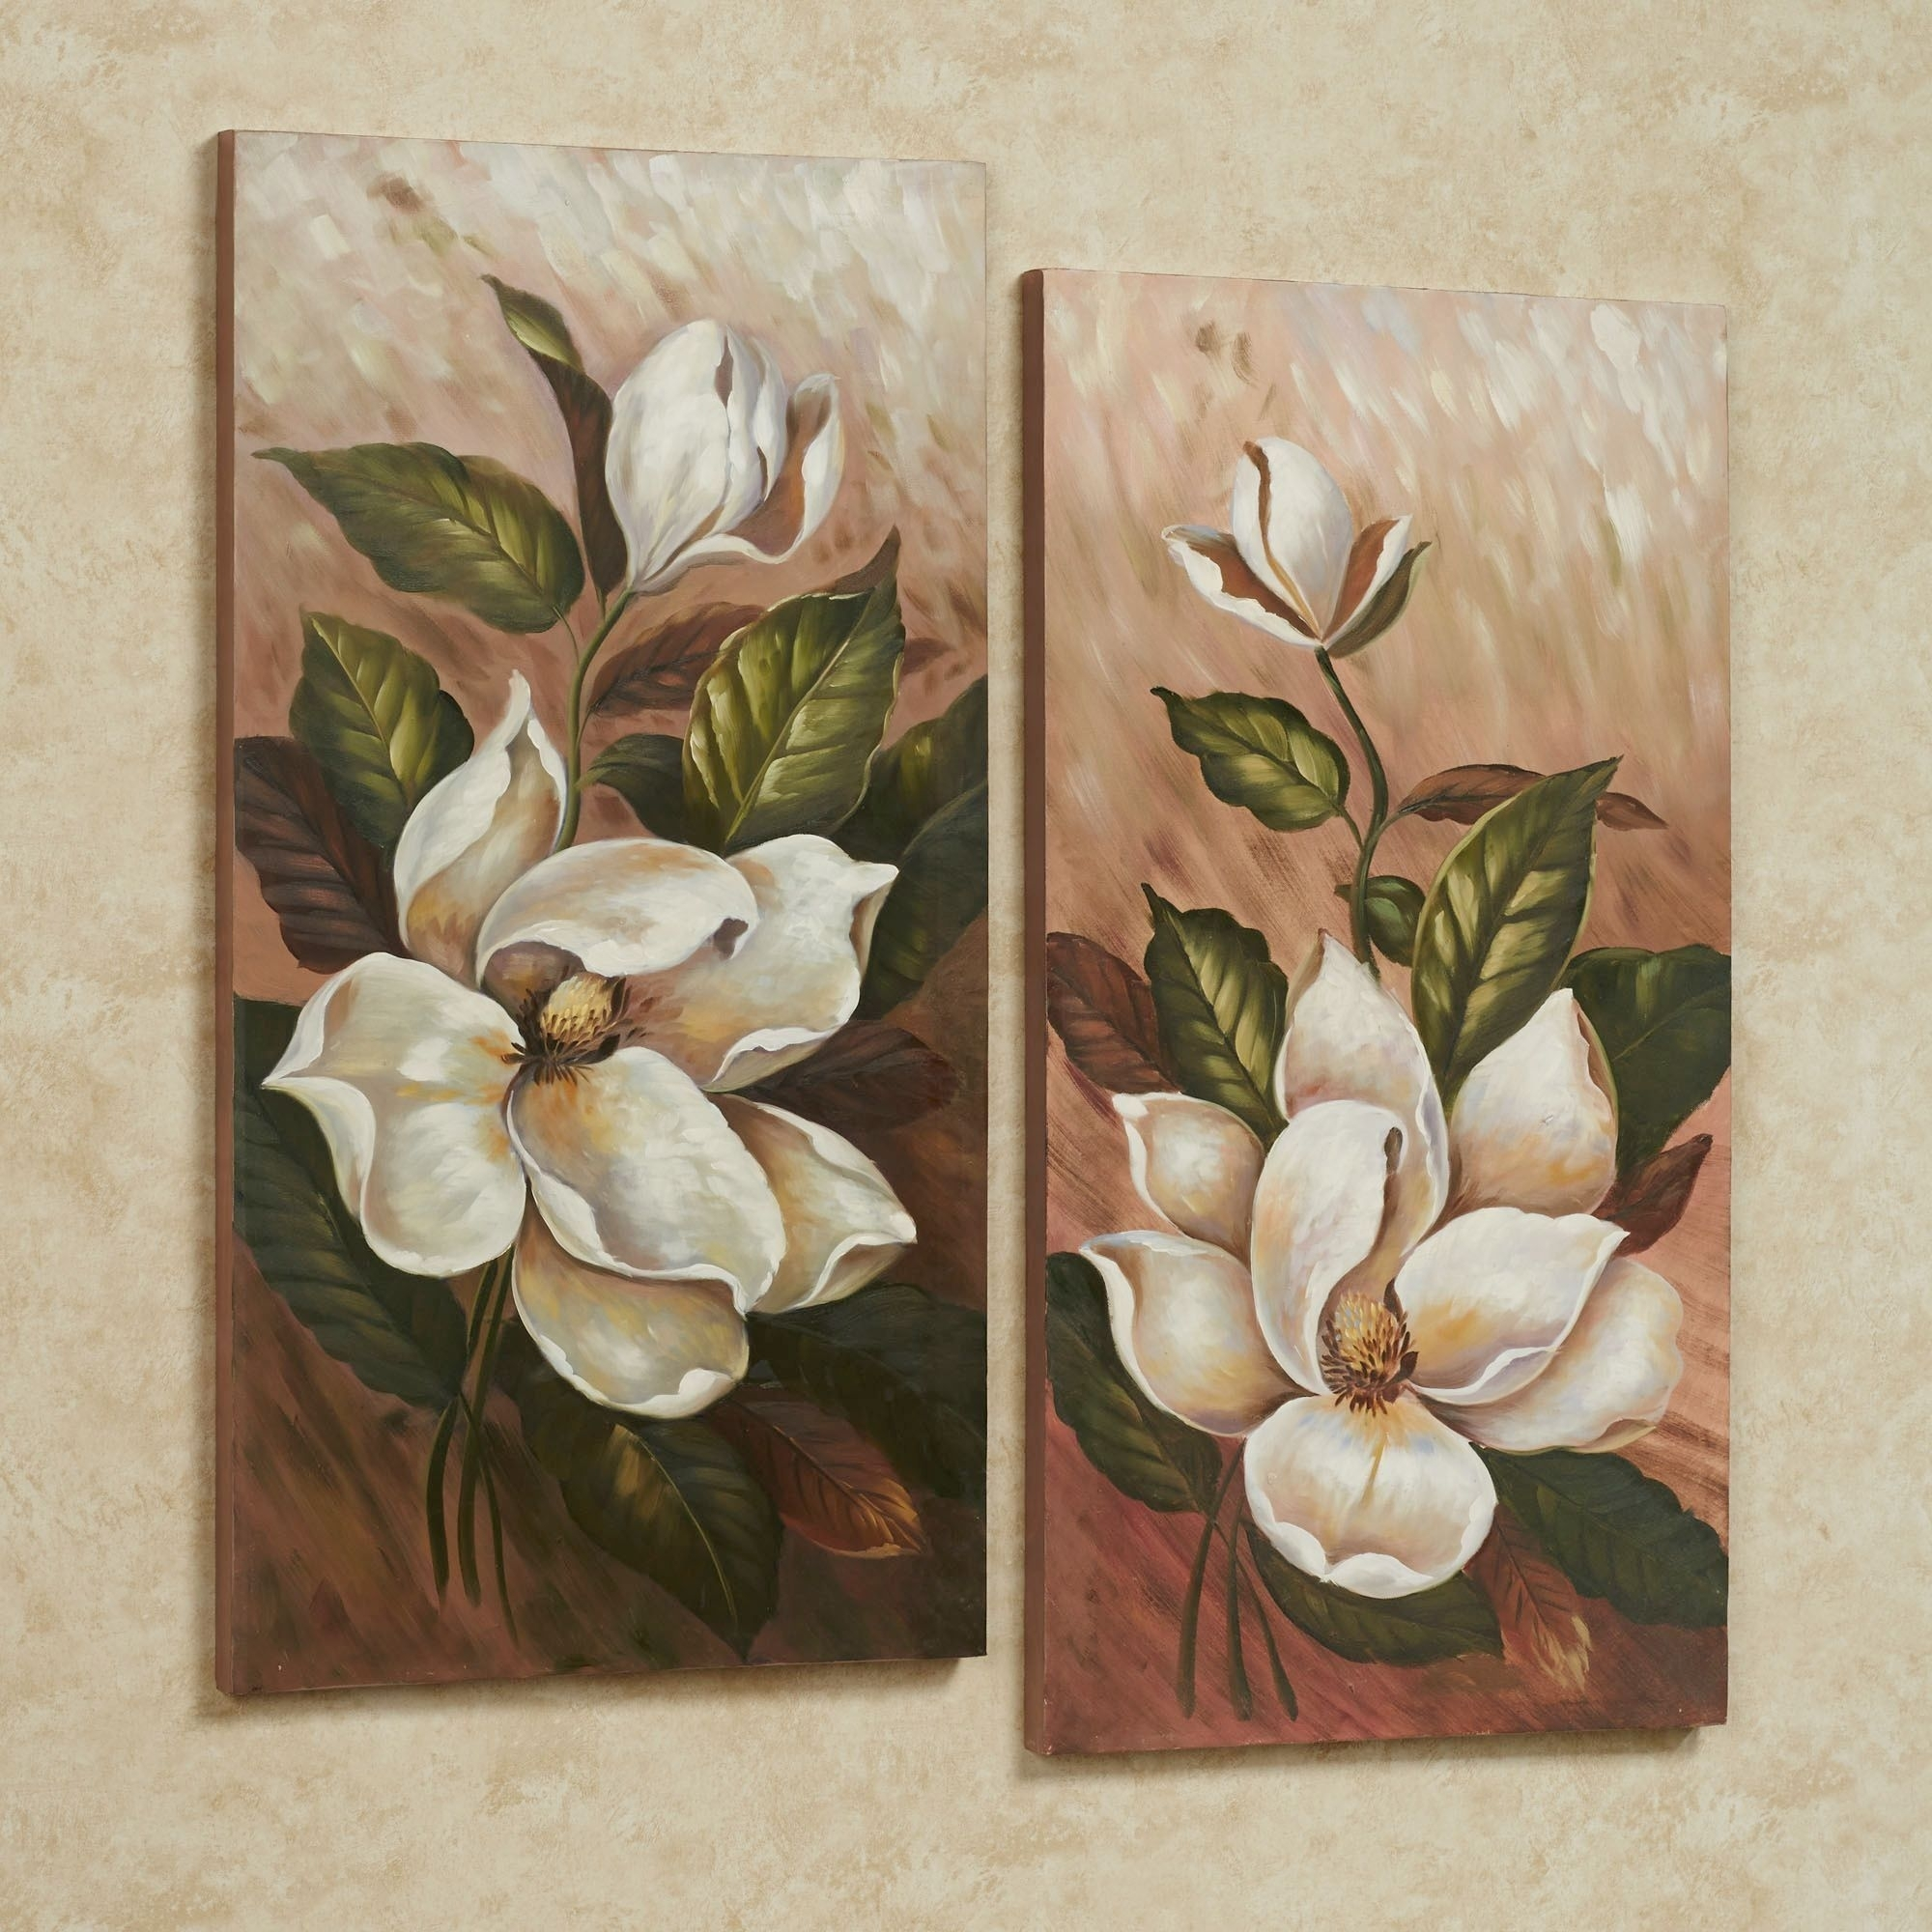 Annalynn Magnolia Floral Canvas Wall Art Set | Artistic | Pinterest Intended For Canvas Wall Art Sets (View 3 of 20)